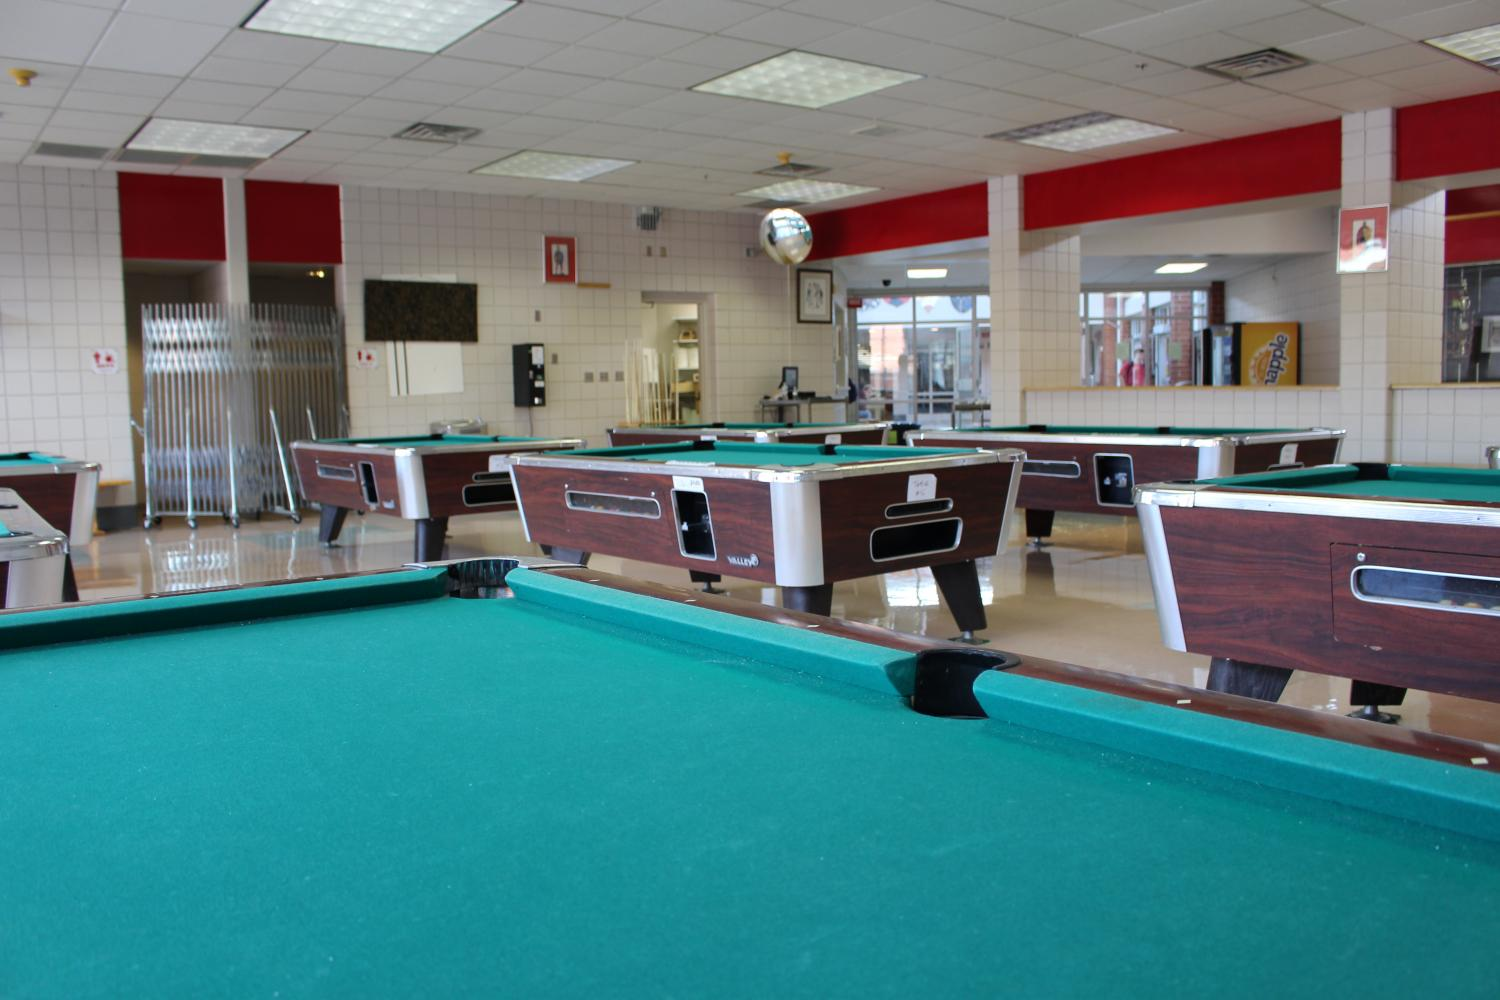 The pool hall, where all new students cling.